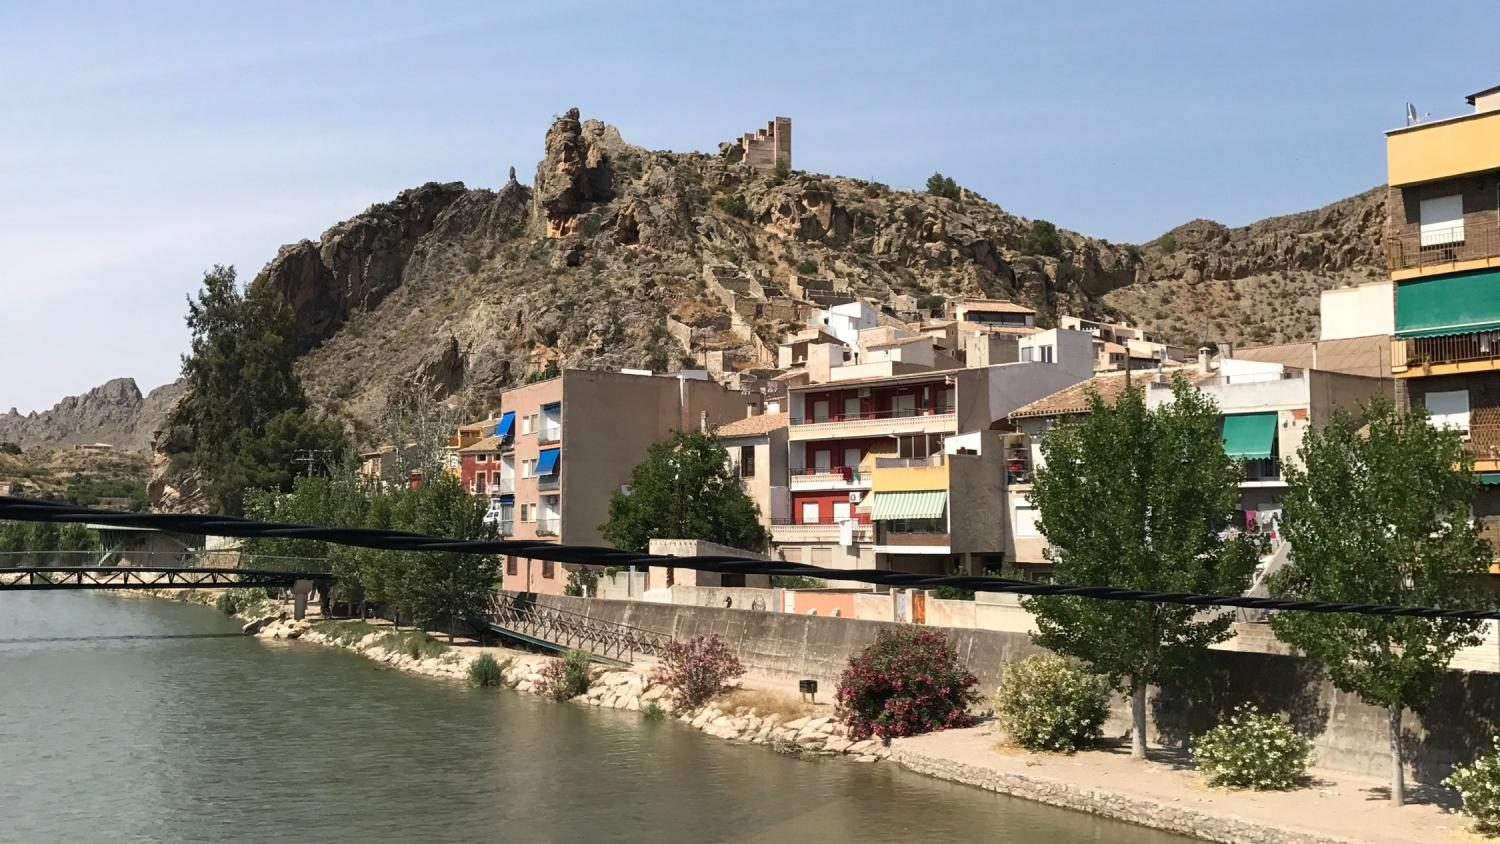 Pictured: The Río Segura, a wide river in southeast Spain that went from being one of the most polluted rivers in Europe to the least polluted in Spain. (Photo Credit: Sophie Lamphier